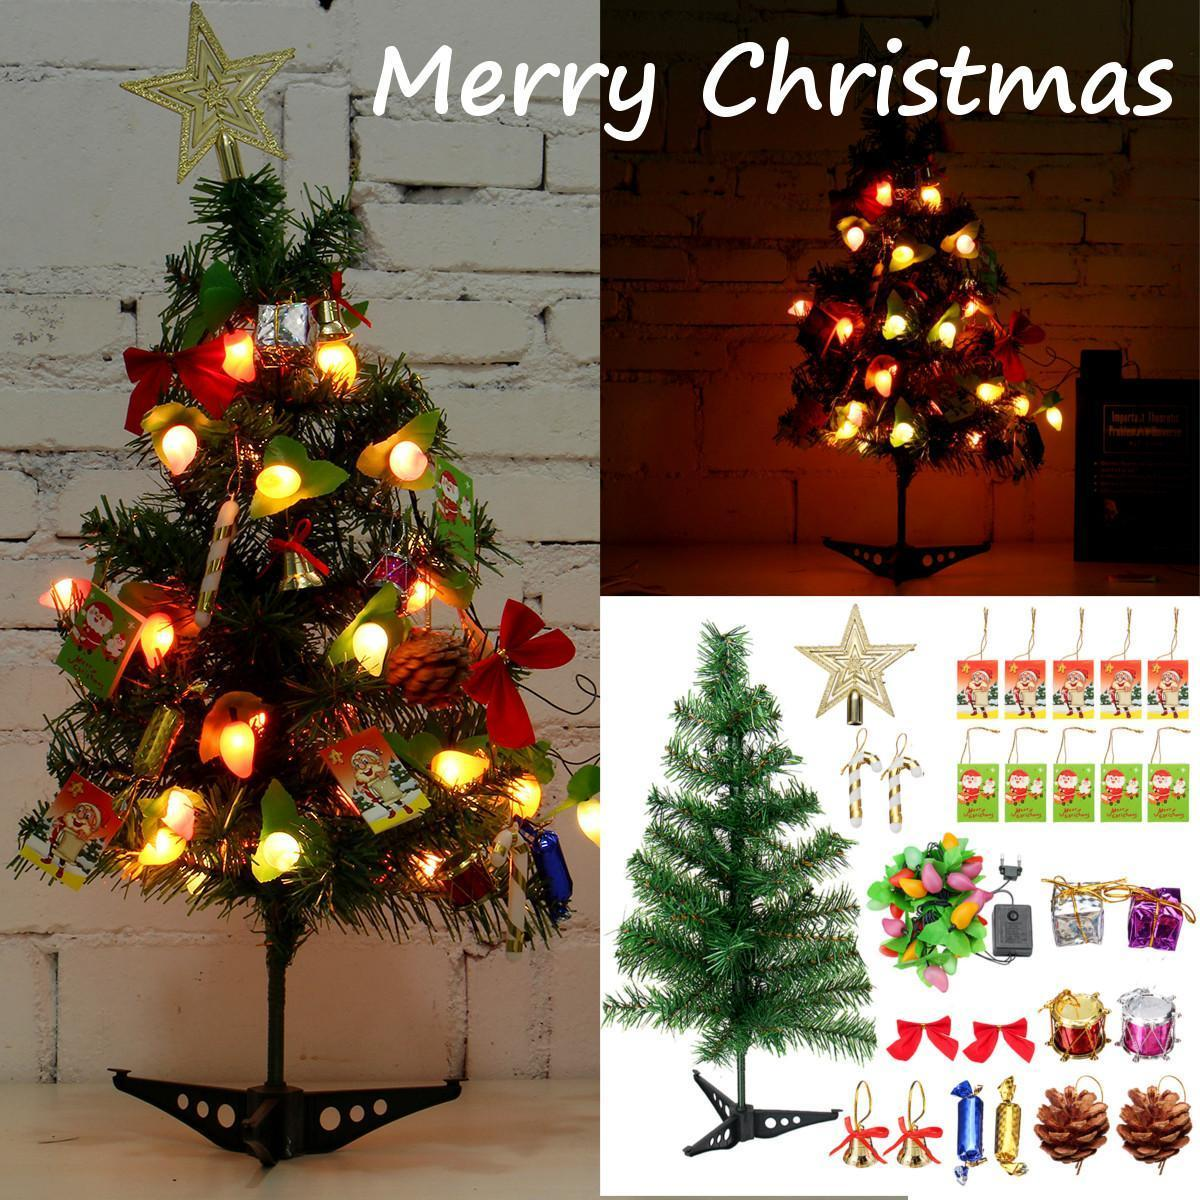 Tabletop Artificial Small Mini Christmas Tree With LED Lights /& Ornaments Decor